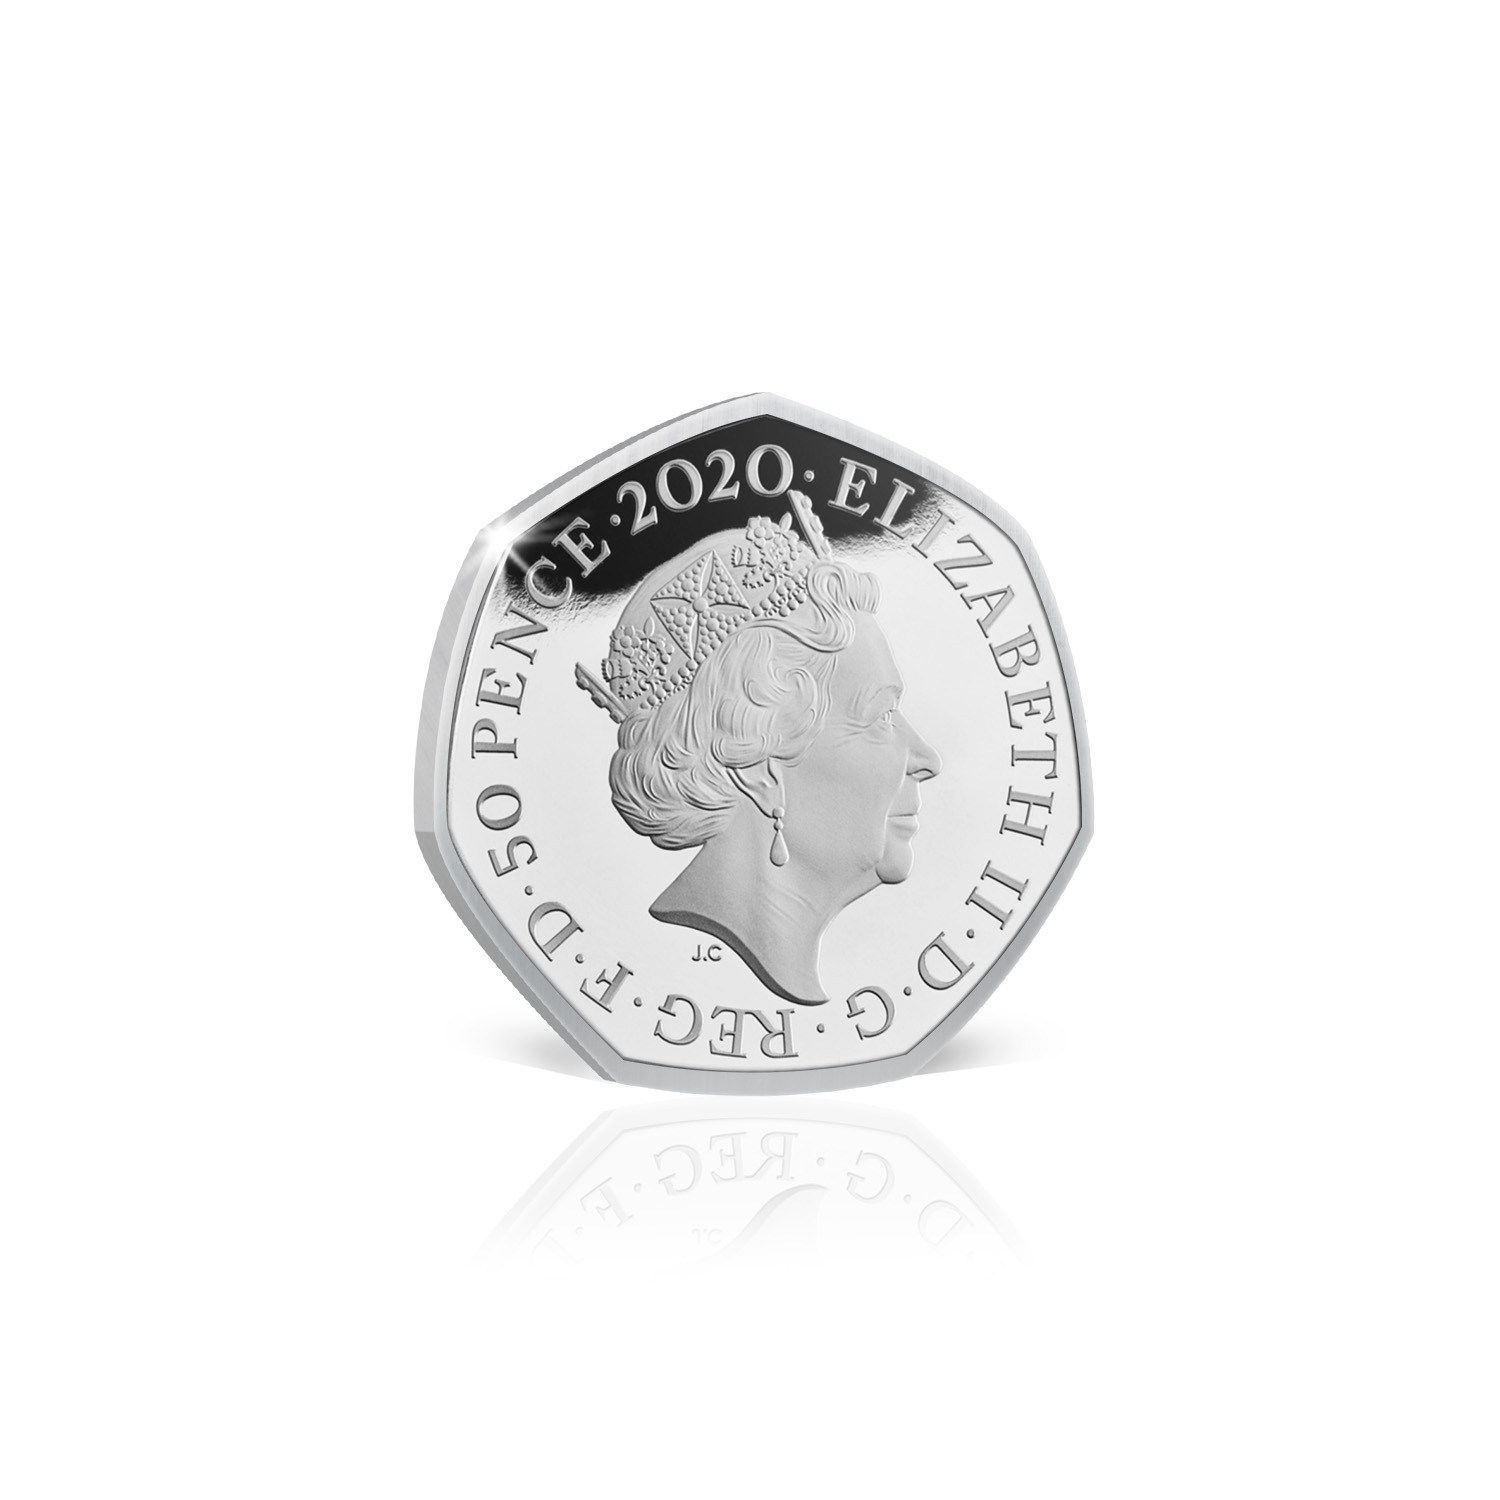 Brexit 50p Coin Official Royal Mint Limited Edition Brand New Solid Silver Proof 6